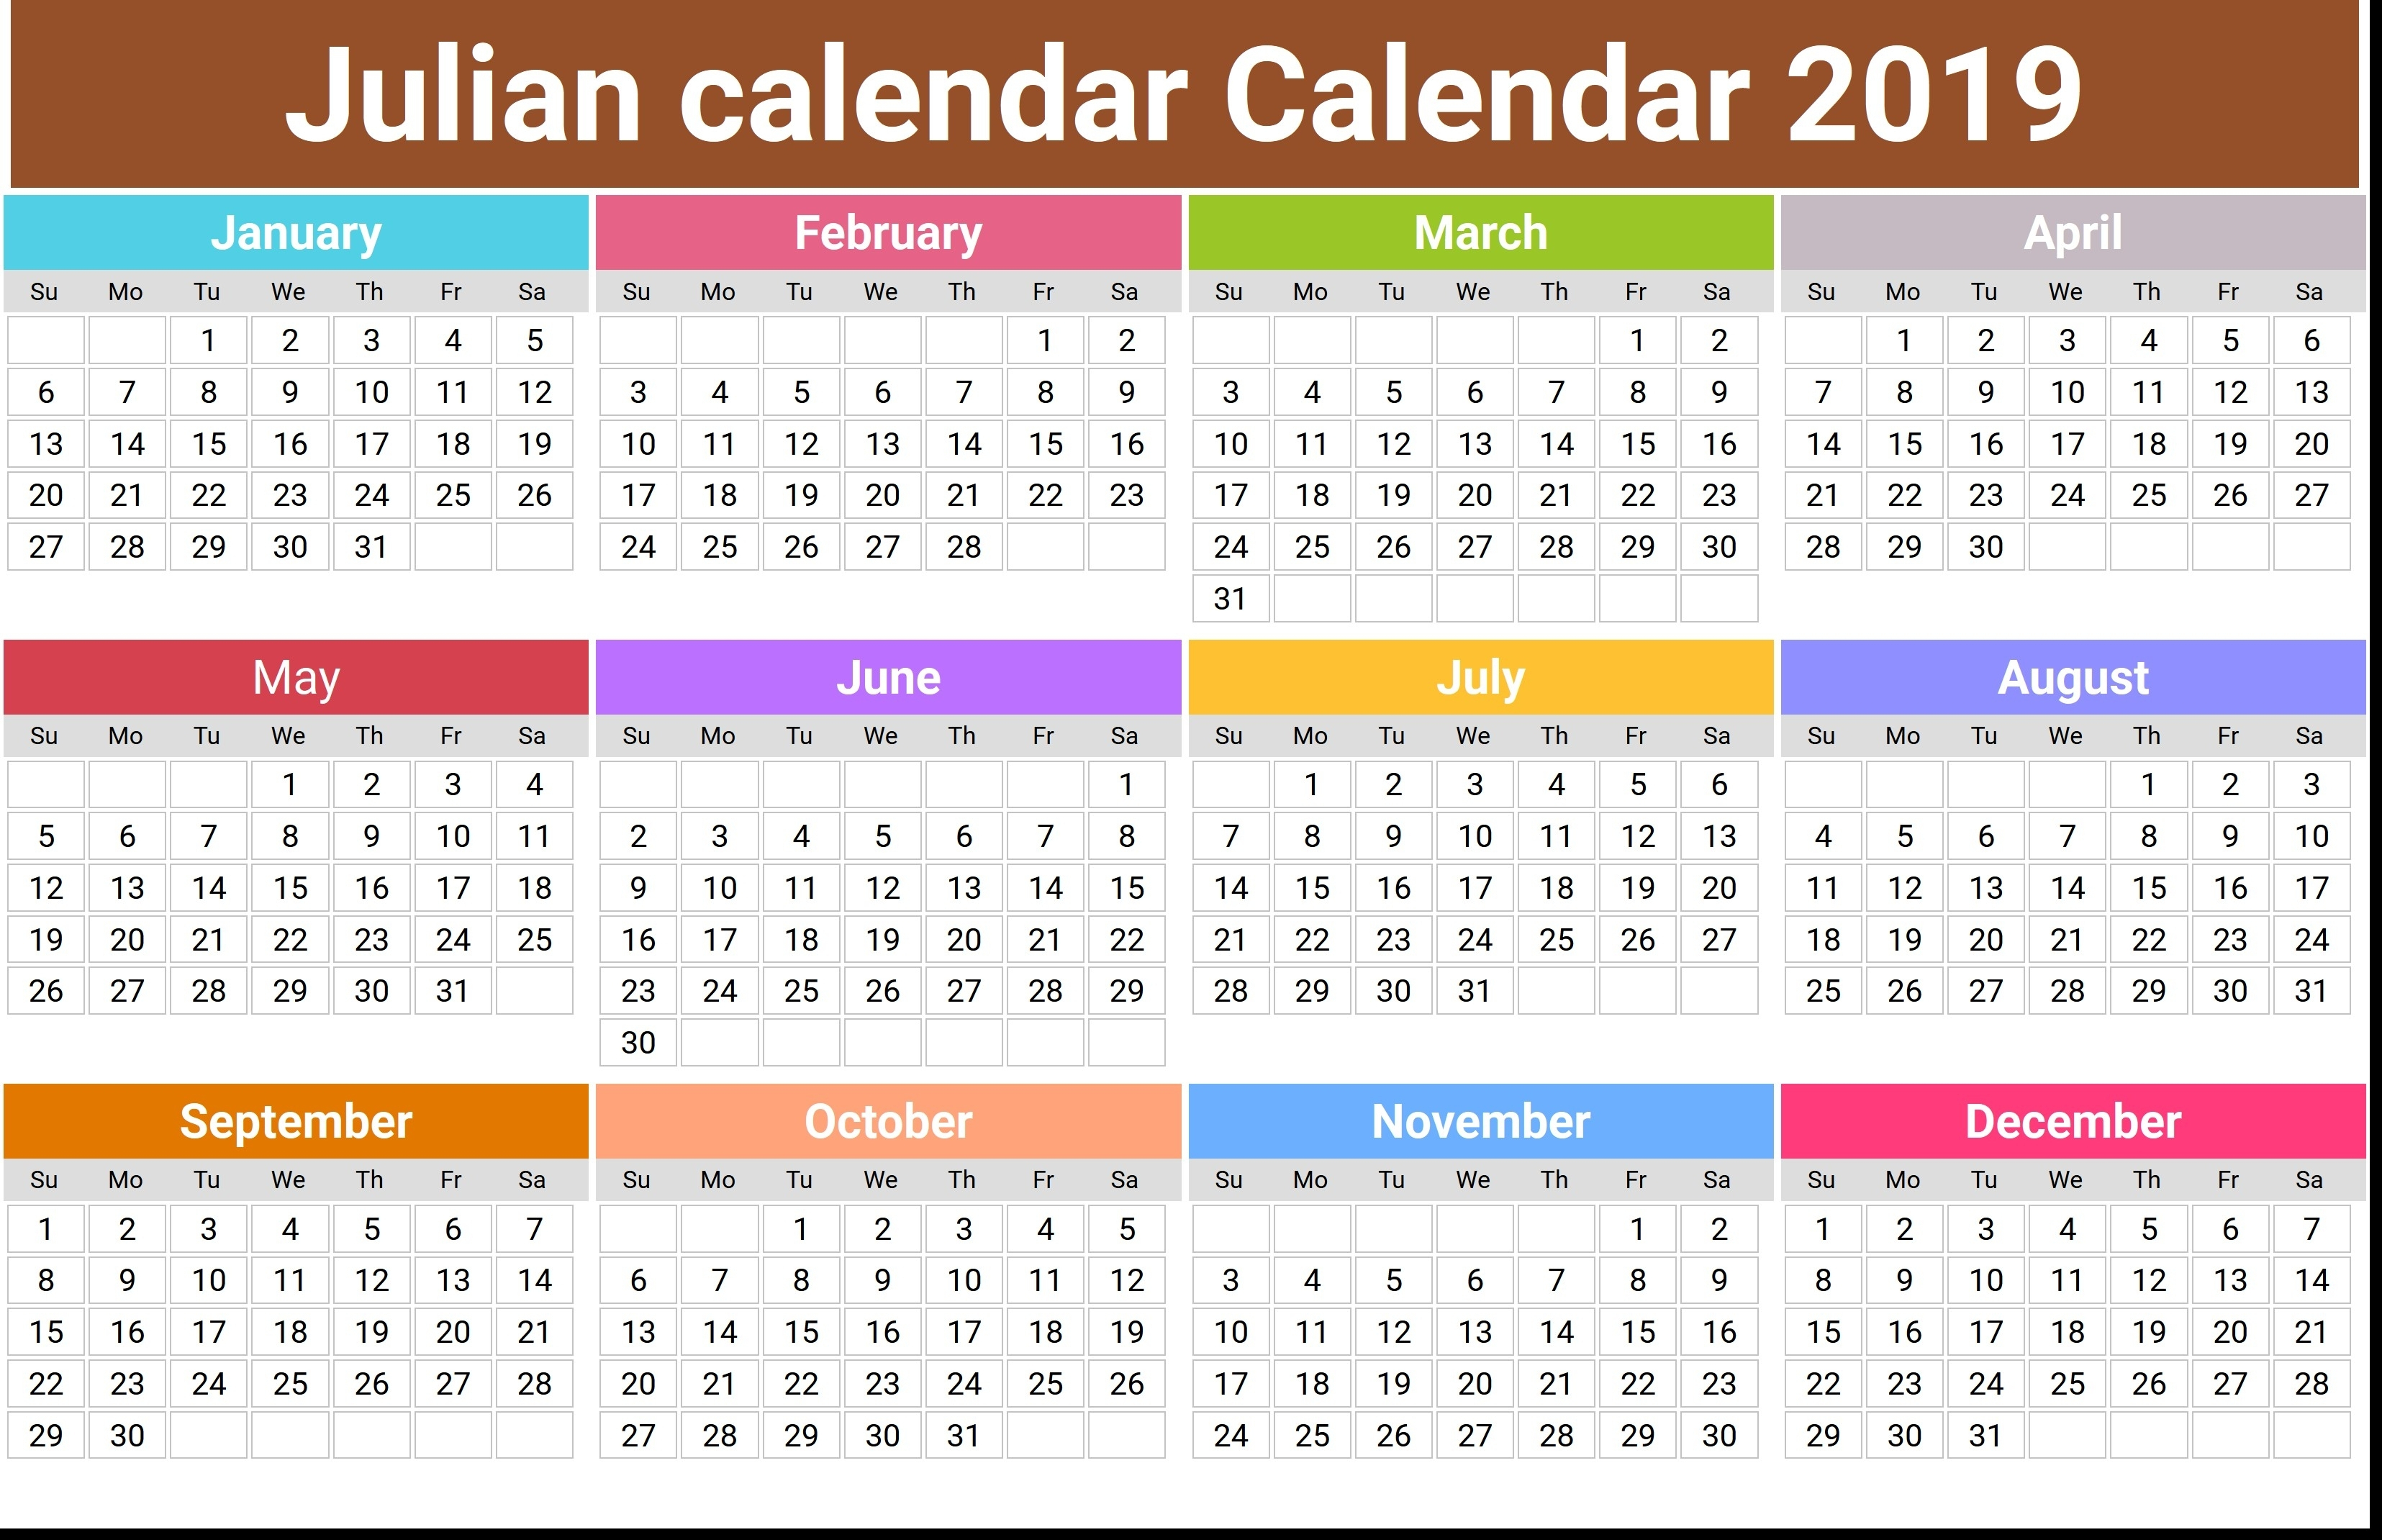 Julian Calendar 2020 2020 Template | Example Calendar Printable within Quadax 2020 Julian Calendar